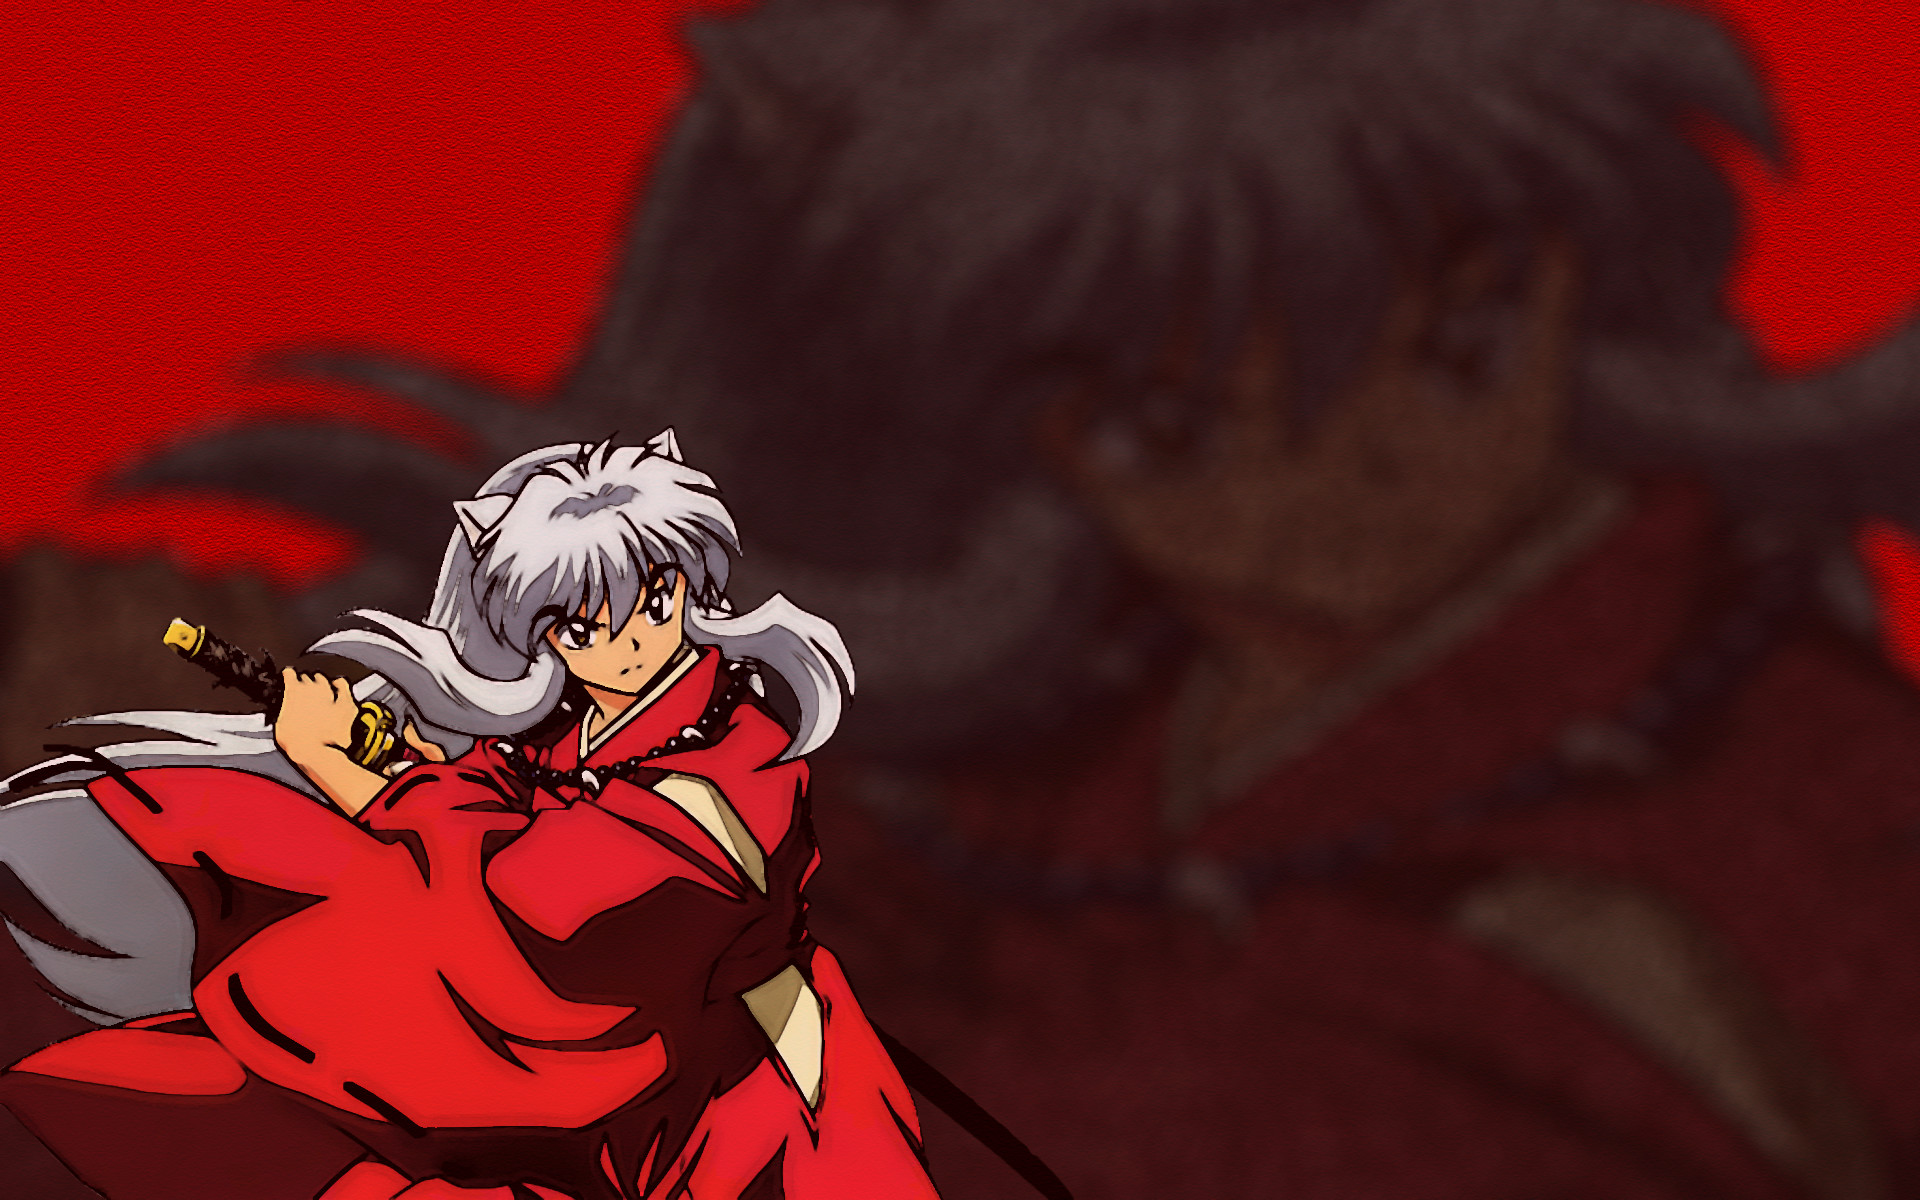 1920x1200 InuYasha Wallpaper InuYasha Wallpaper by superzproductions